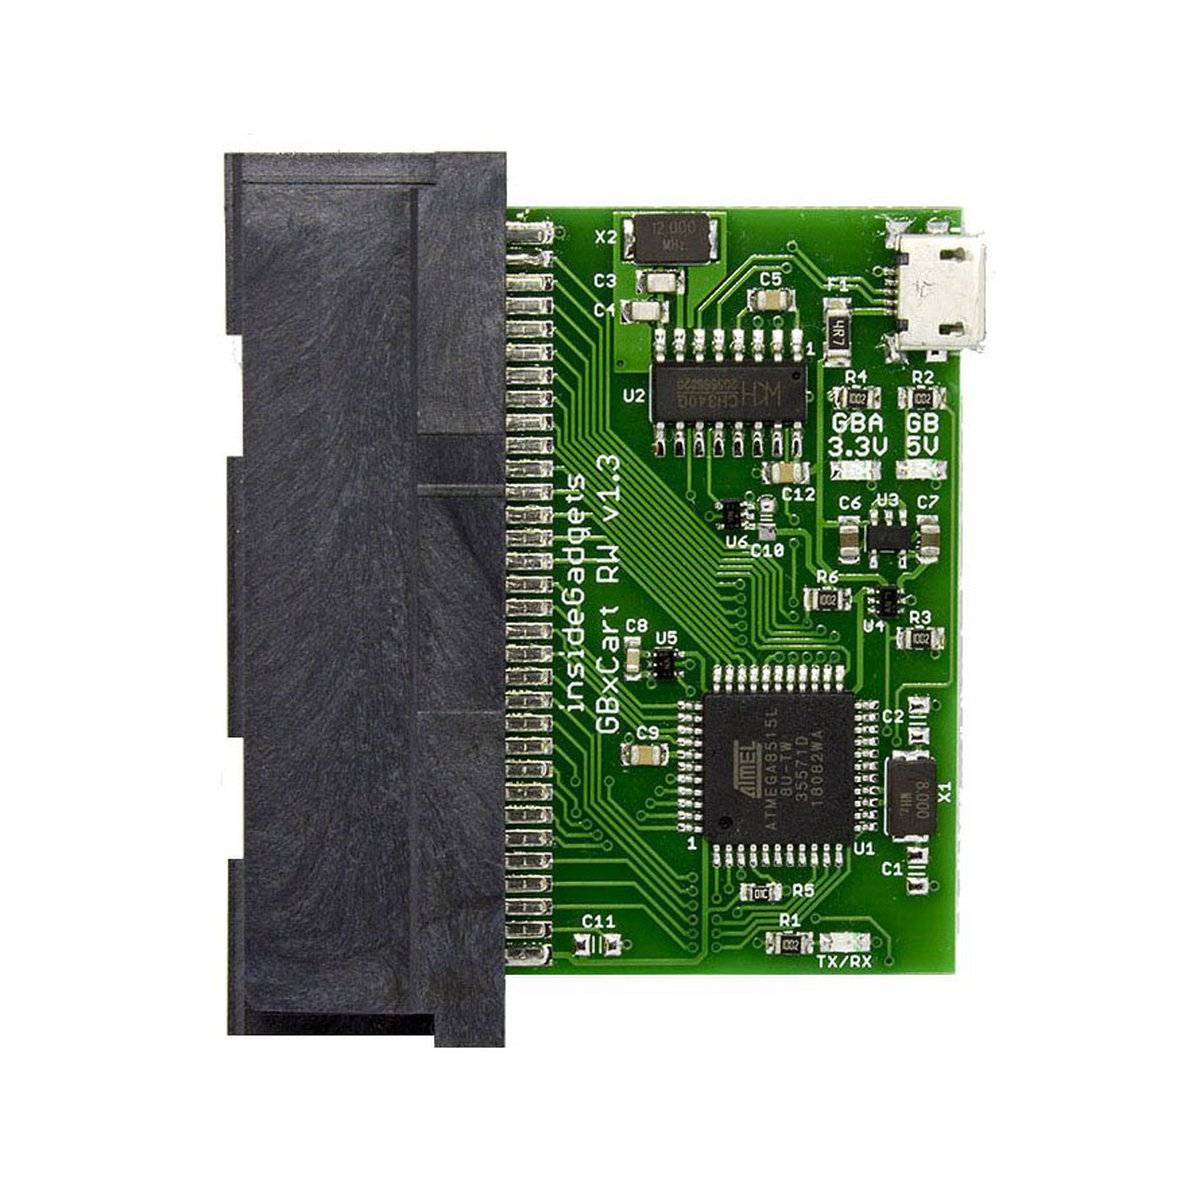 GBxCart RW (Gameboy/GBC/GBA Cart Reader/Writer) from insideGadgets